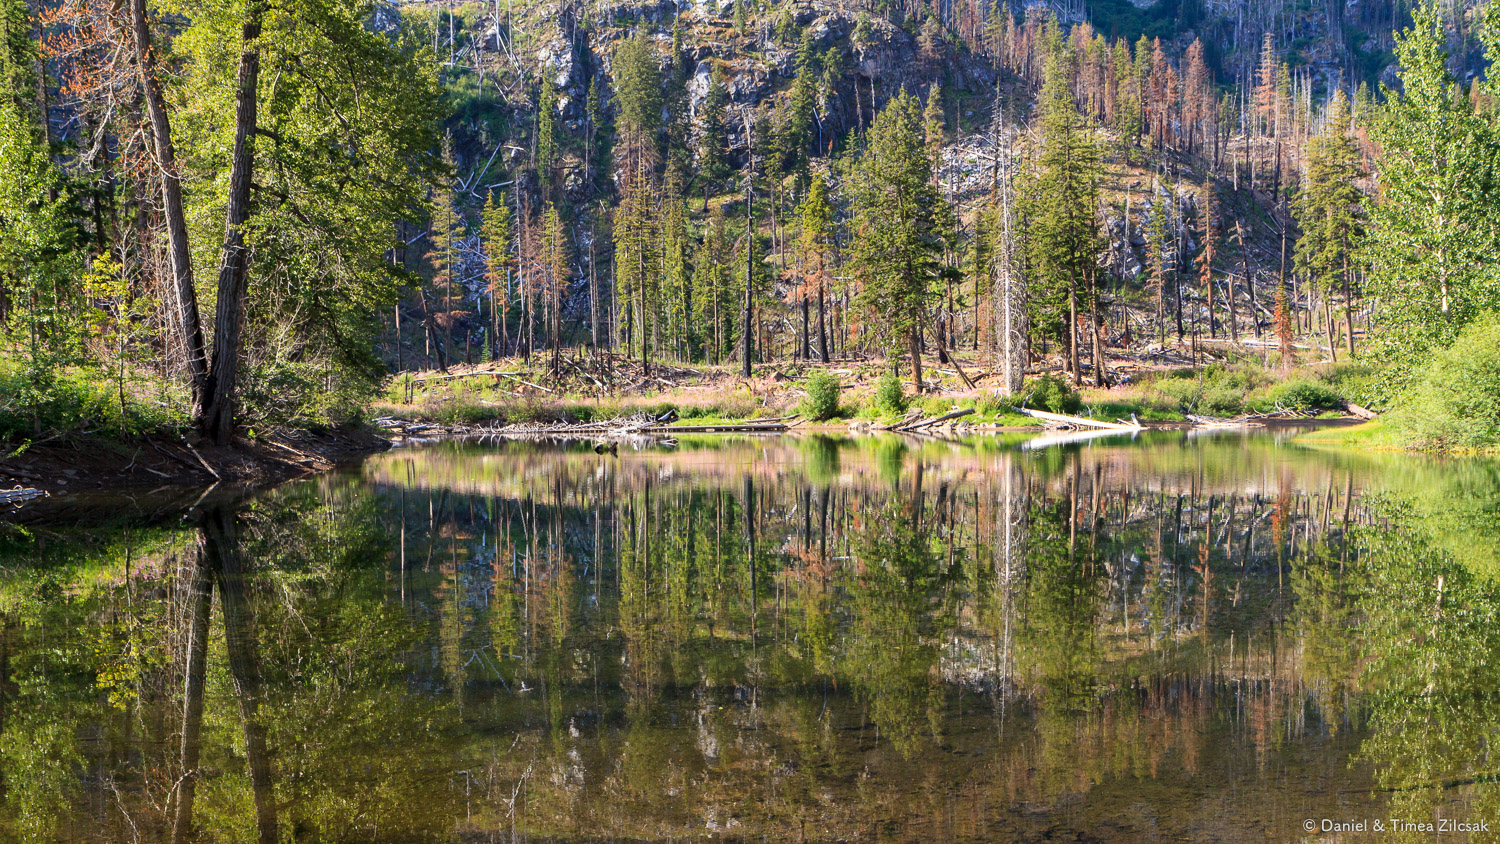 Little Eightmile Lake, a great spot for a snack and rest break